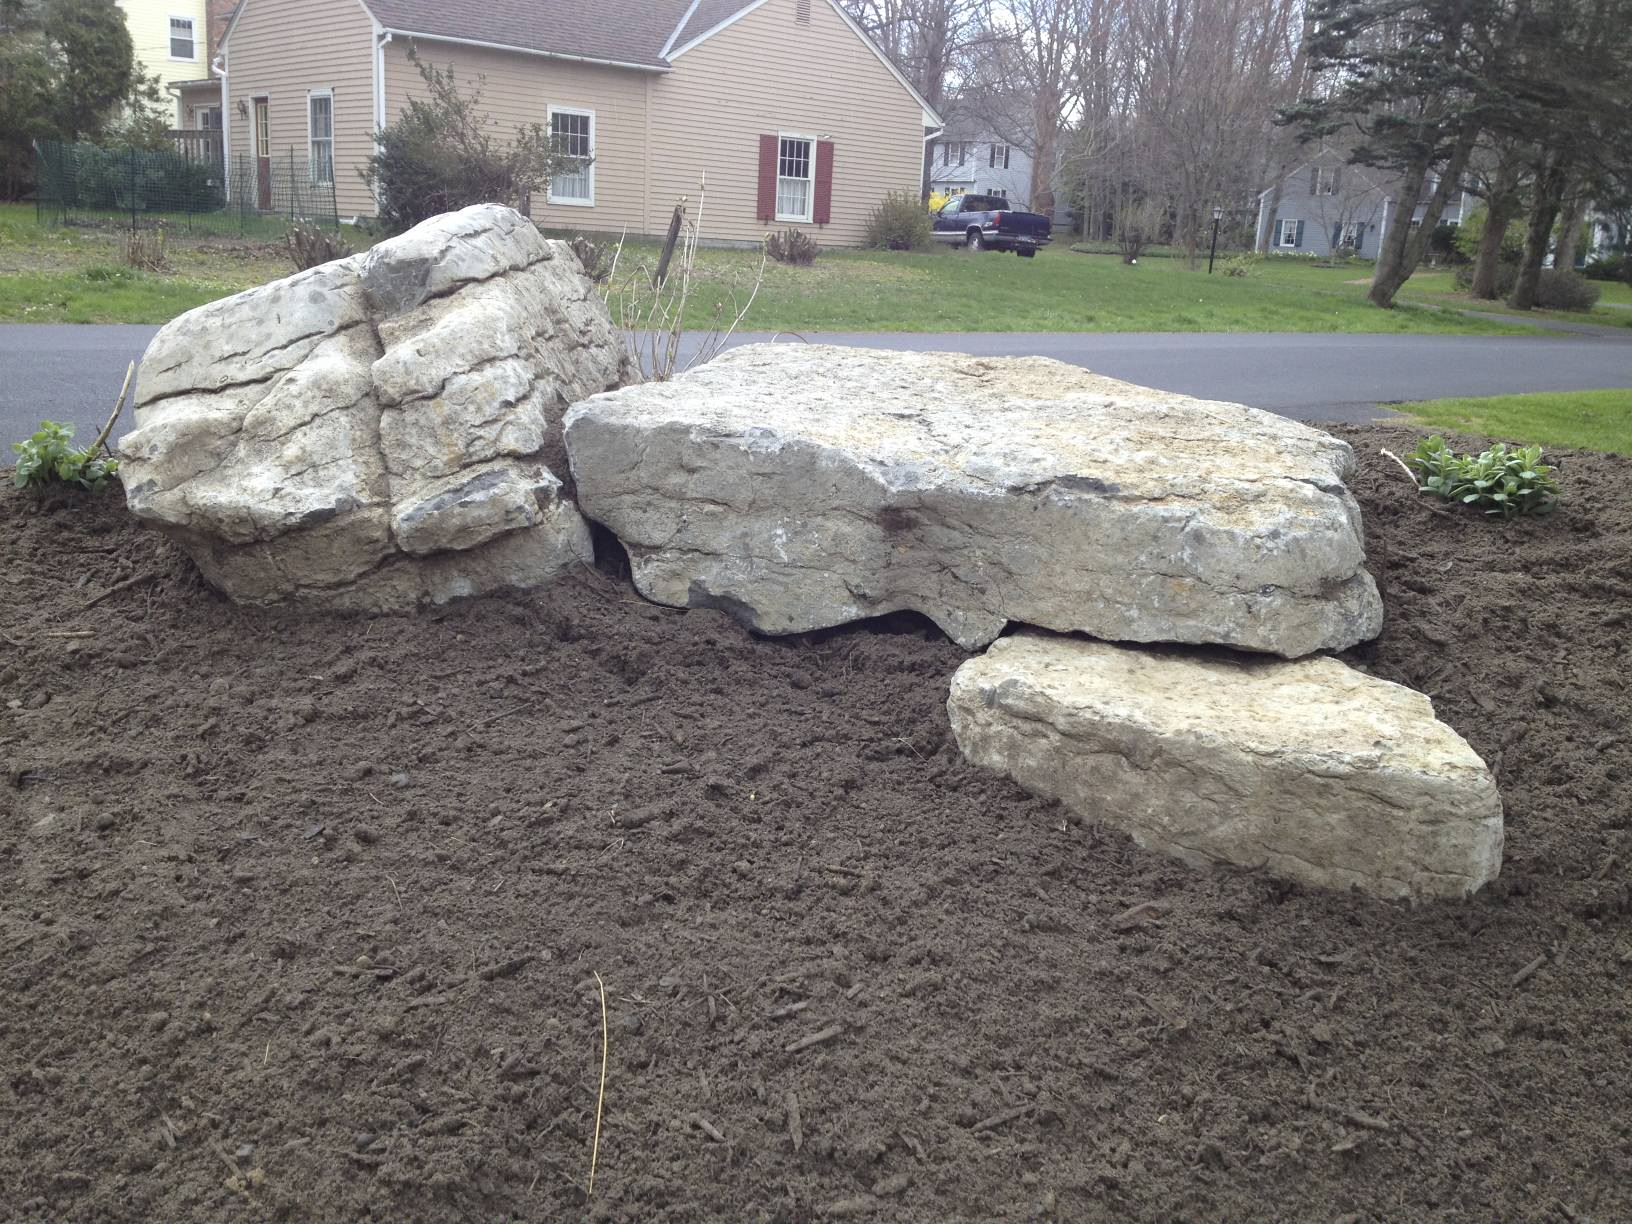 The stones not only provide contrast with the plantings, they also allow access to the upper part of the berm.